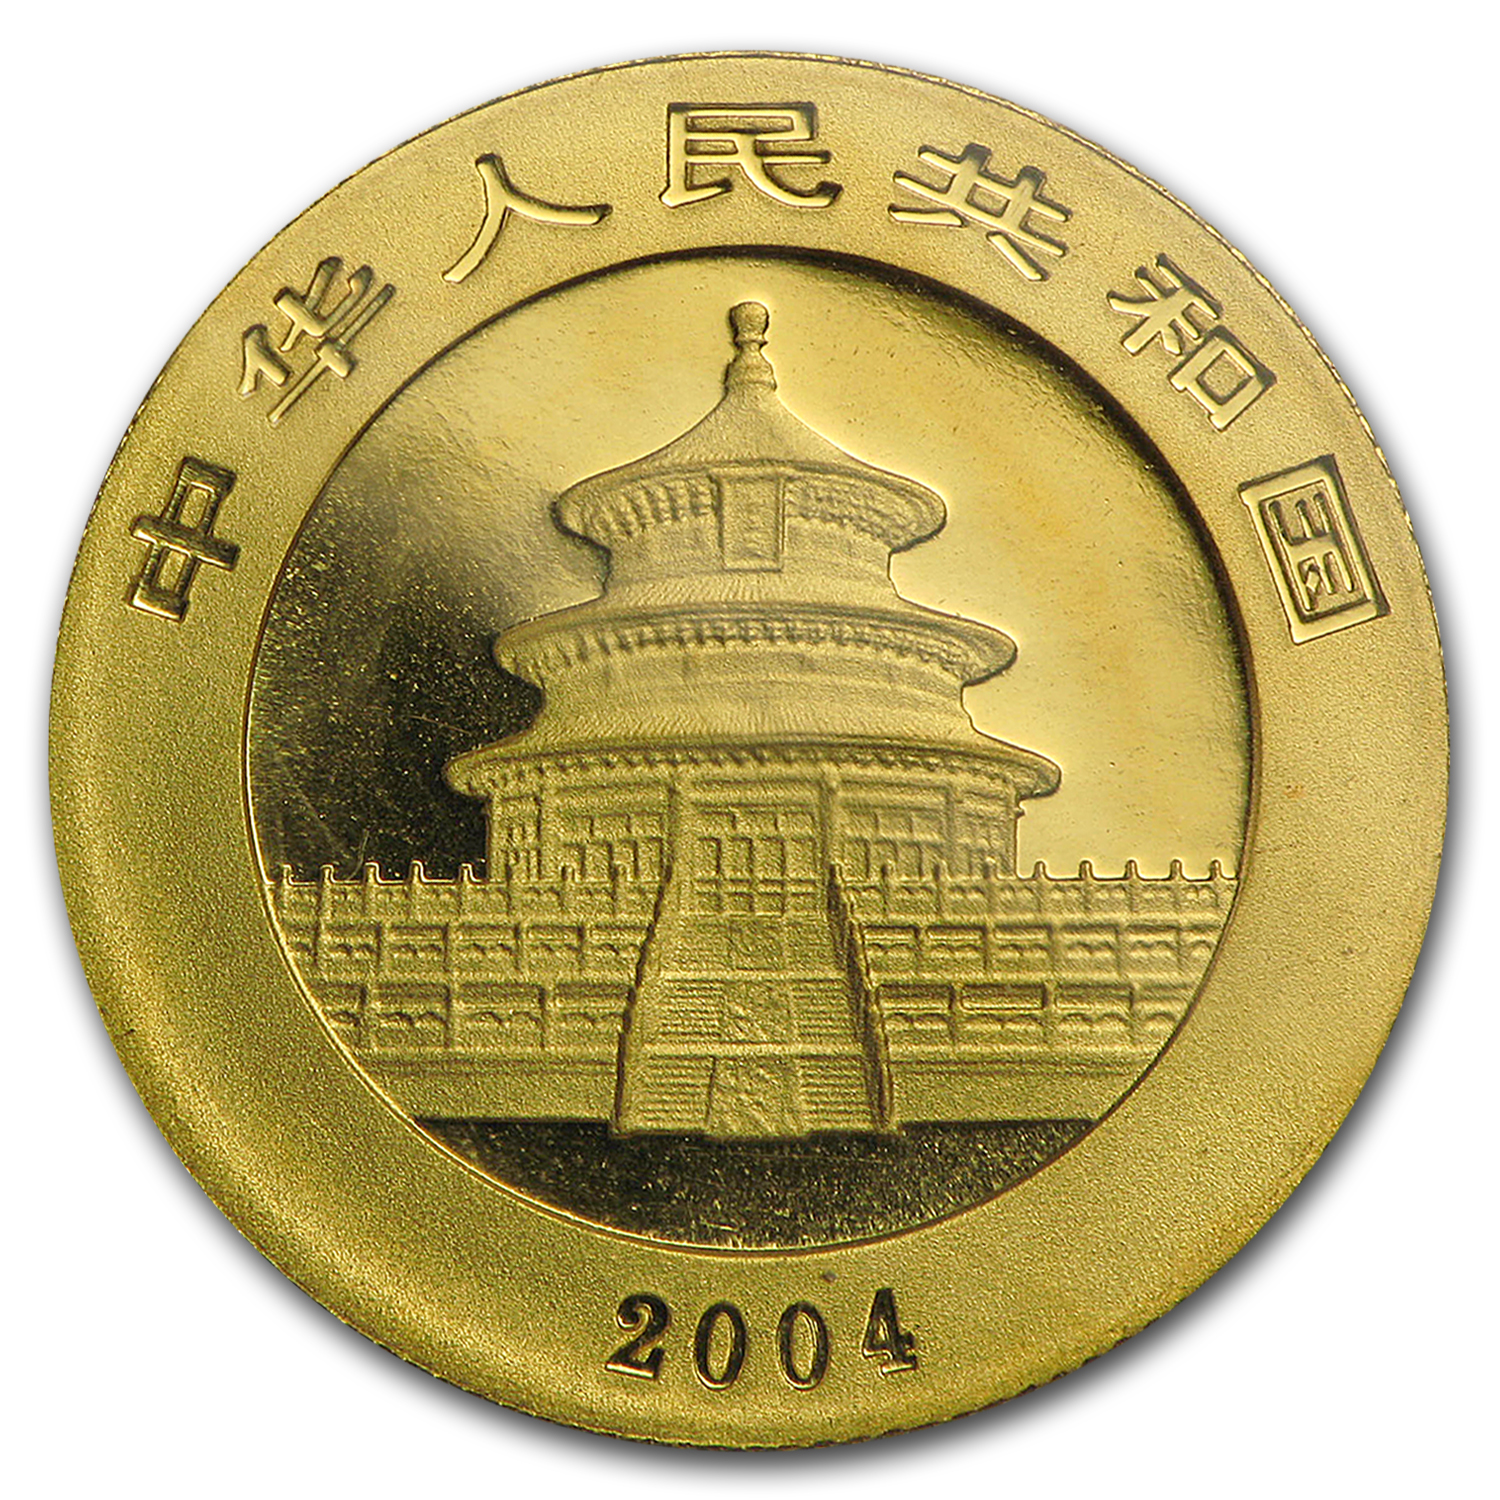 2004 (1/4 oz) Gold Chinese Pandas - (Sealed)